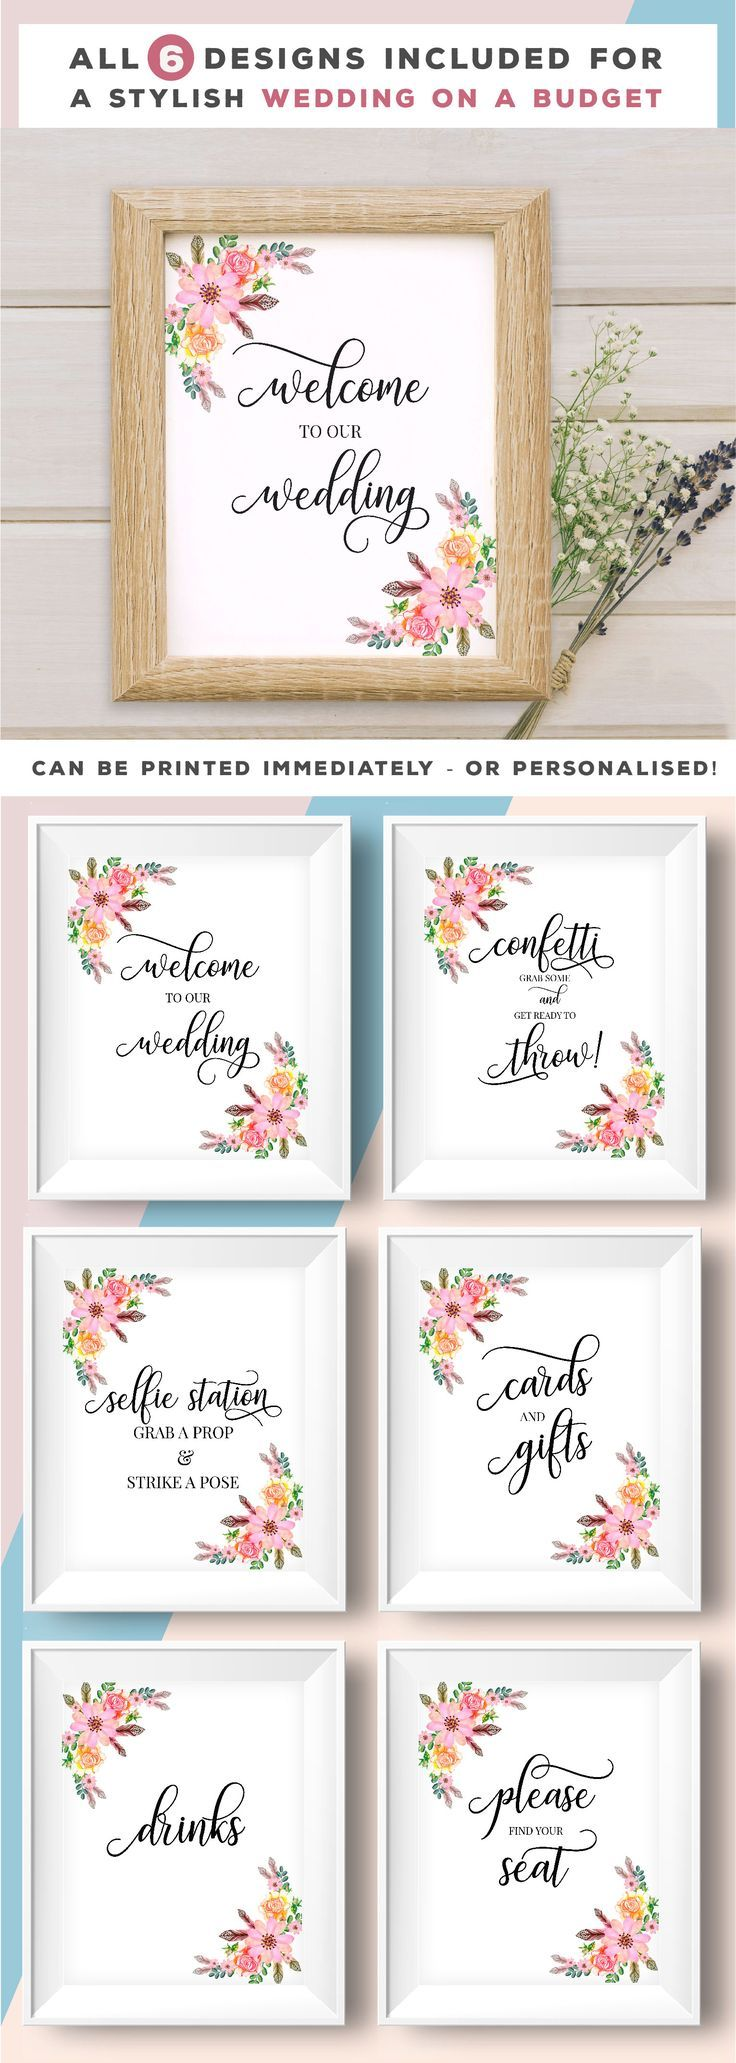 Wedding decor, wedding poster sets. Each with a gorgeous floral style.